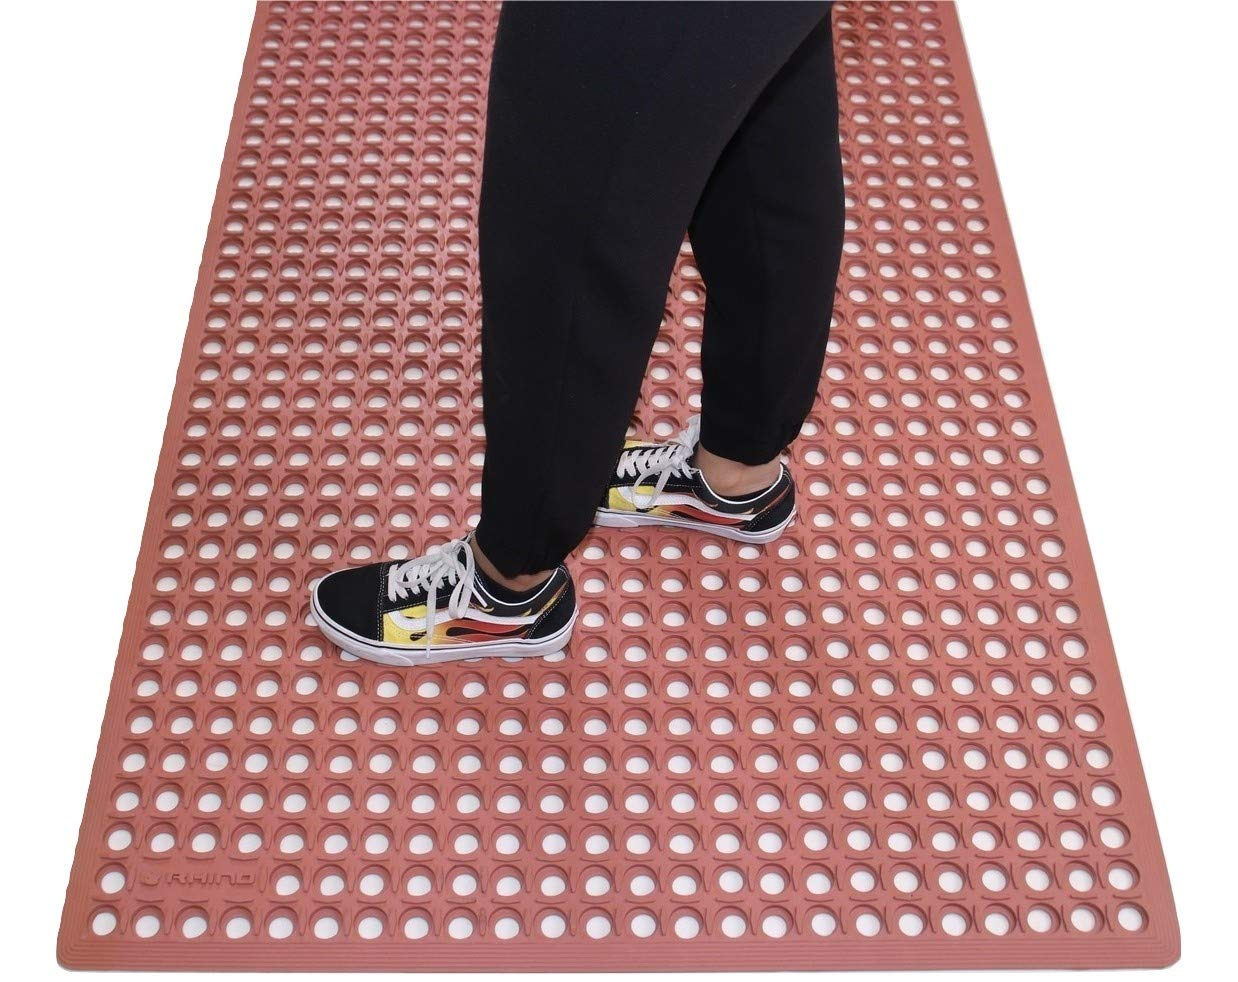 Rhino Mats KCT-310R K-Series Comfort Tract Anti-Fatigue Drain-Thru Mat 3' x 10', 0.5'' Height, 36'' Width, Terra Cotta